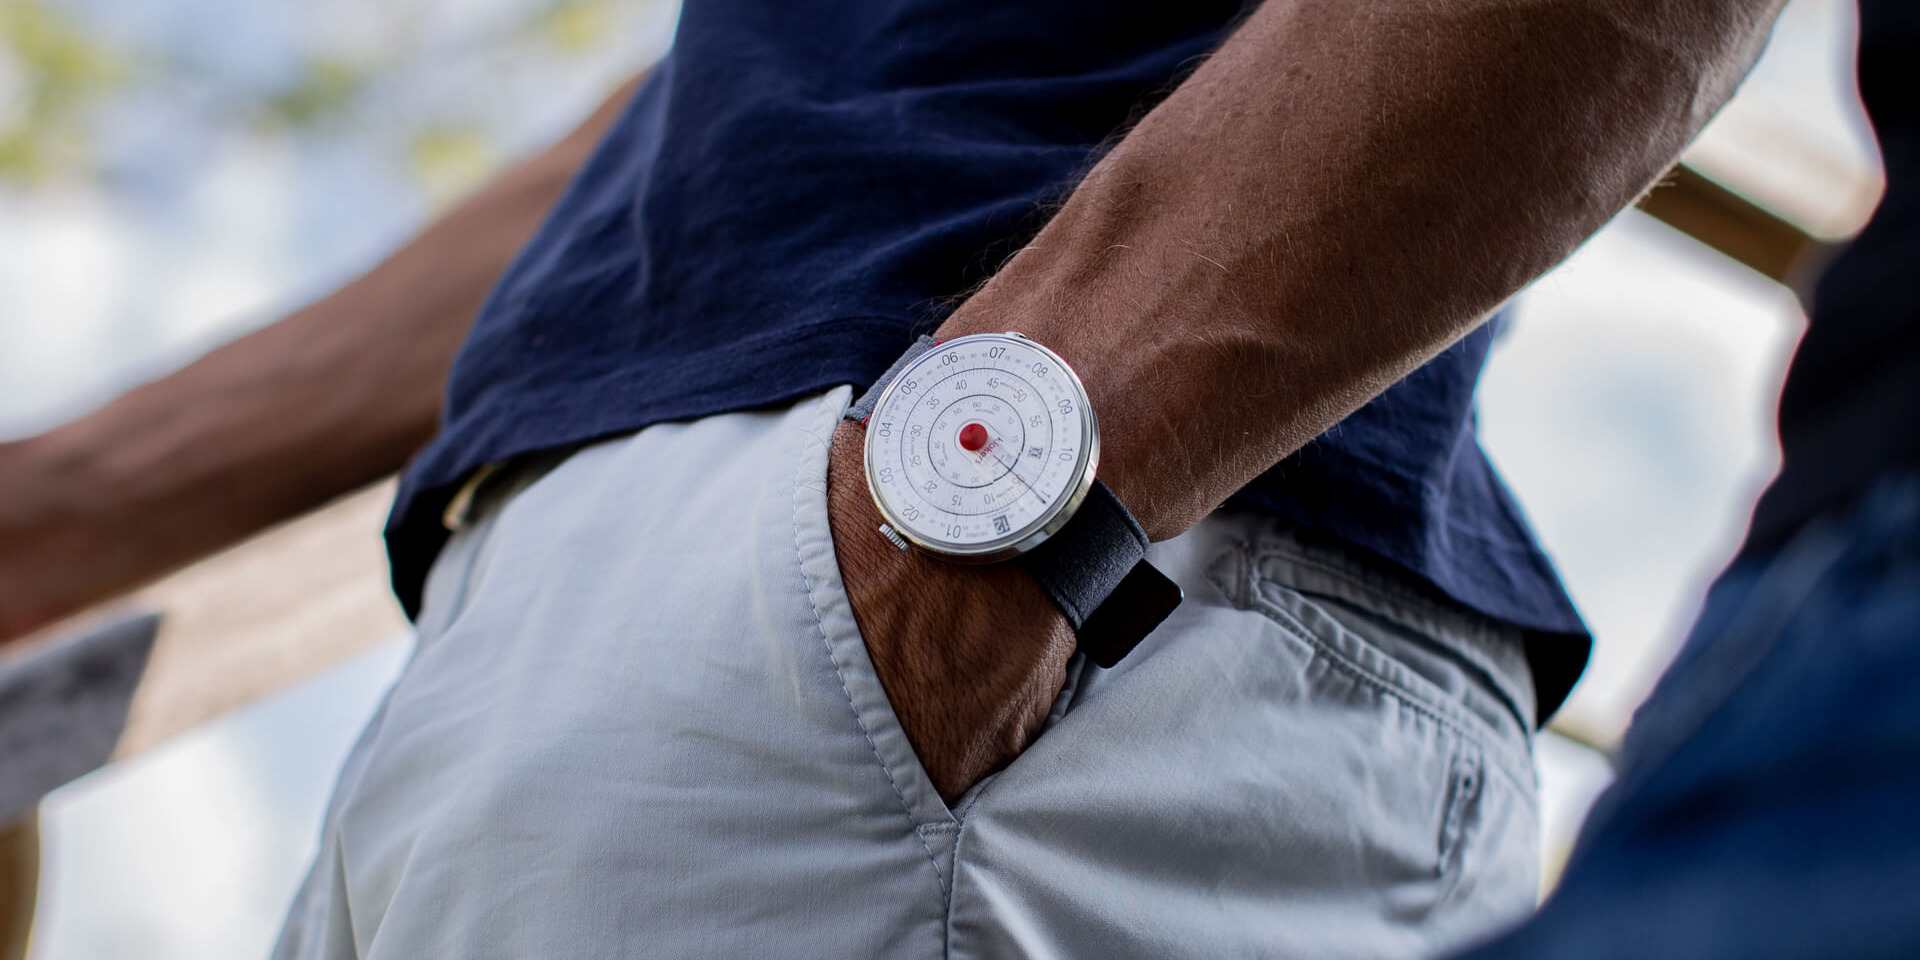 Klok 01 and Klok 01 5th Anniversary from Klokers – Have the Time Revealed by a Time Calculation Device